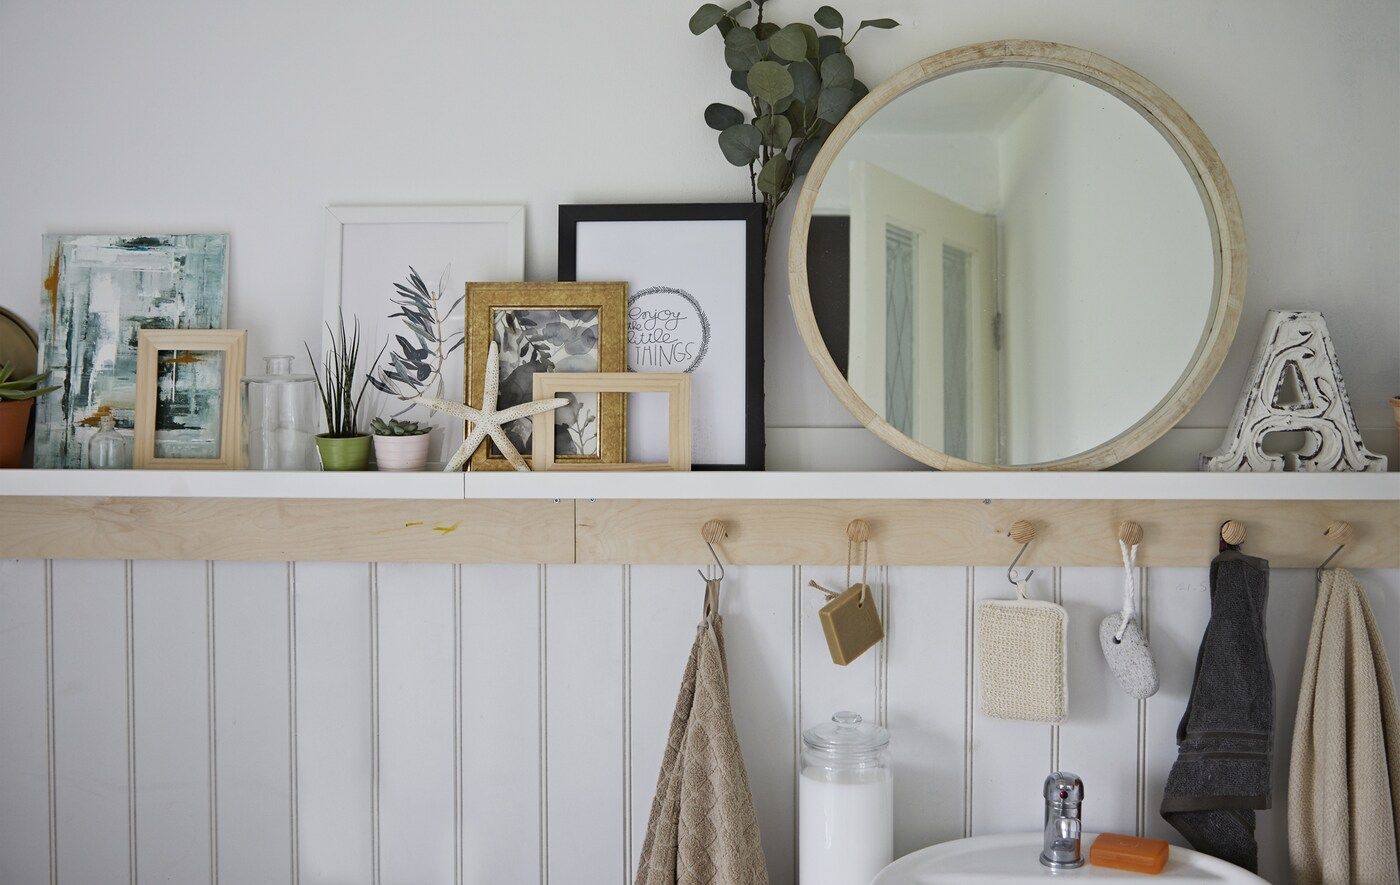 A mirror, plants, pictures and shells on a bathroom shelf with hooks underneath.